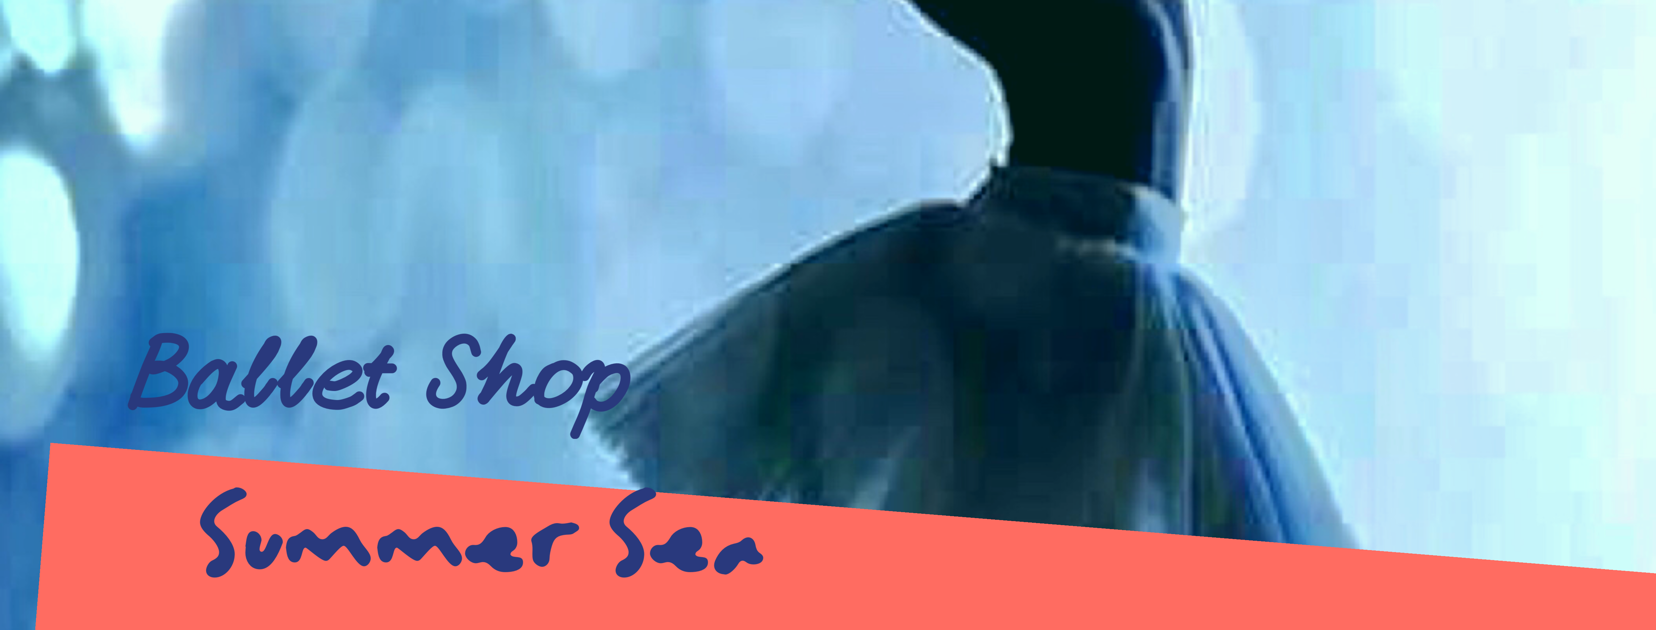 Ballet Shop Summer Sea